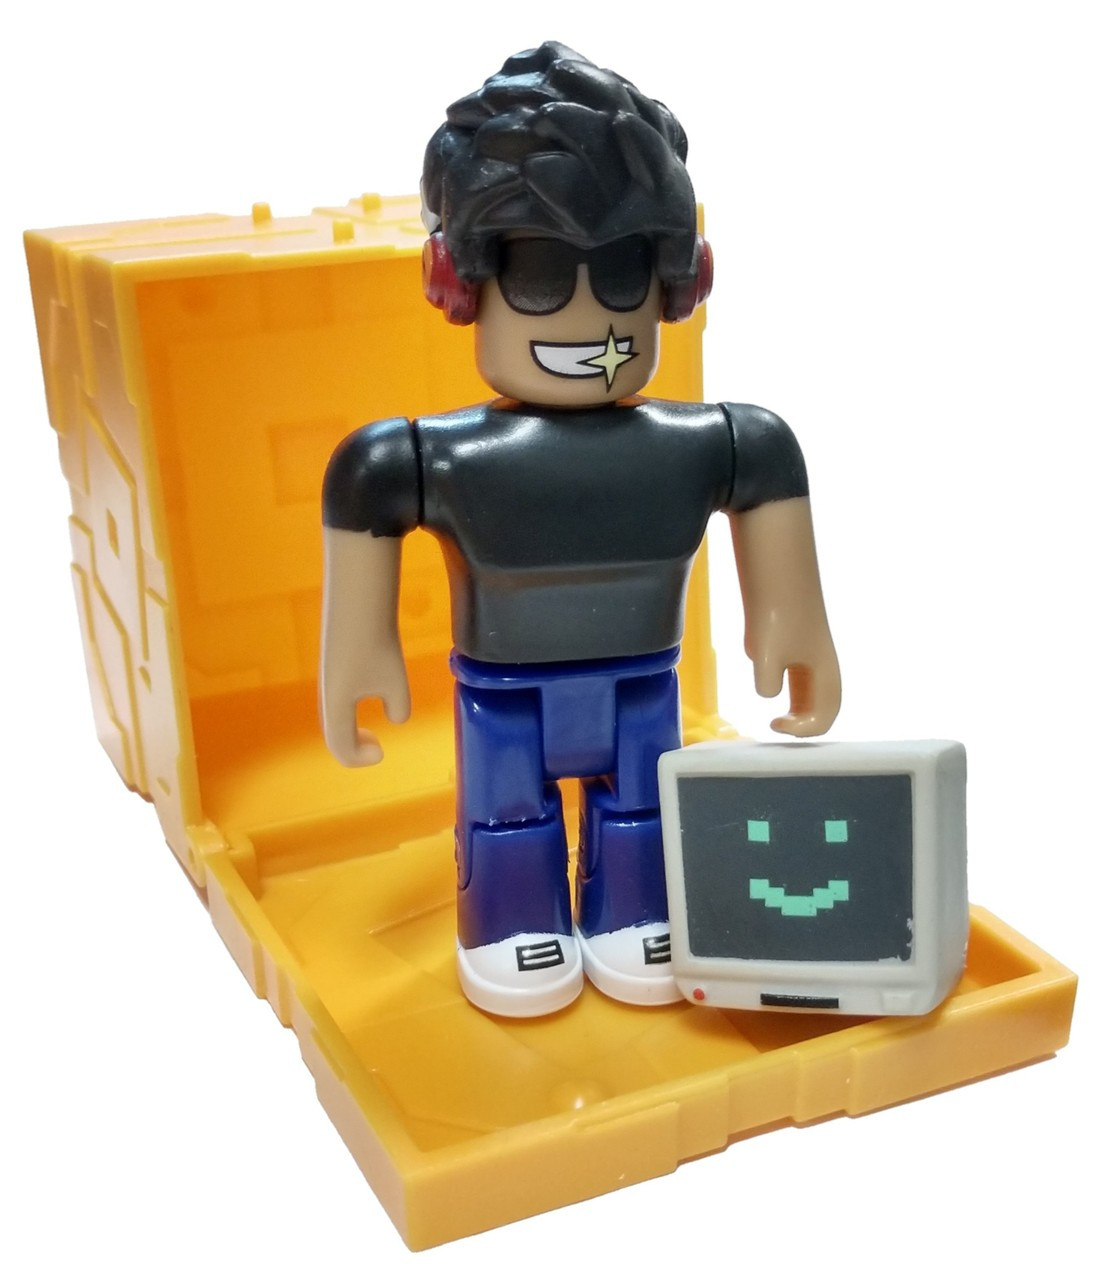 Cup Head Live Song Codes For Roblox Roblox Series 5 Simbuilder 3 Mini Figure With Gold Cube And Online Code Loose Jazwares Toywiz